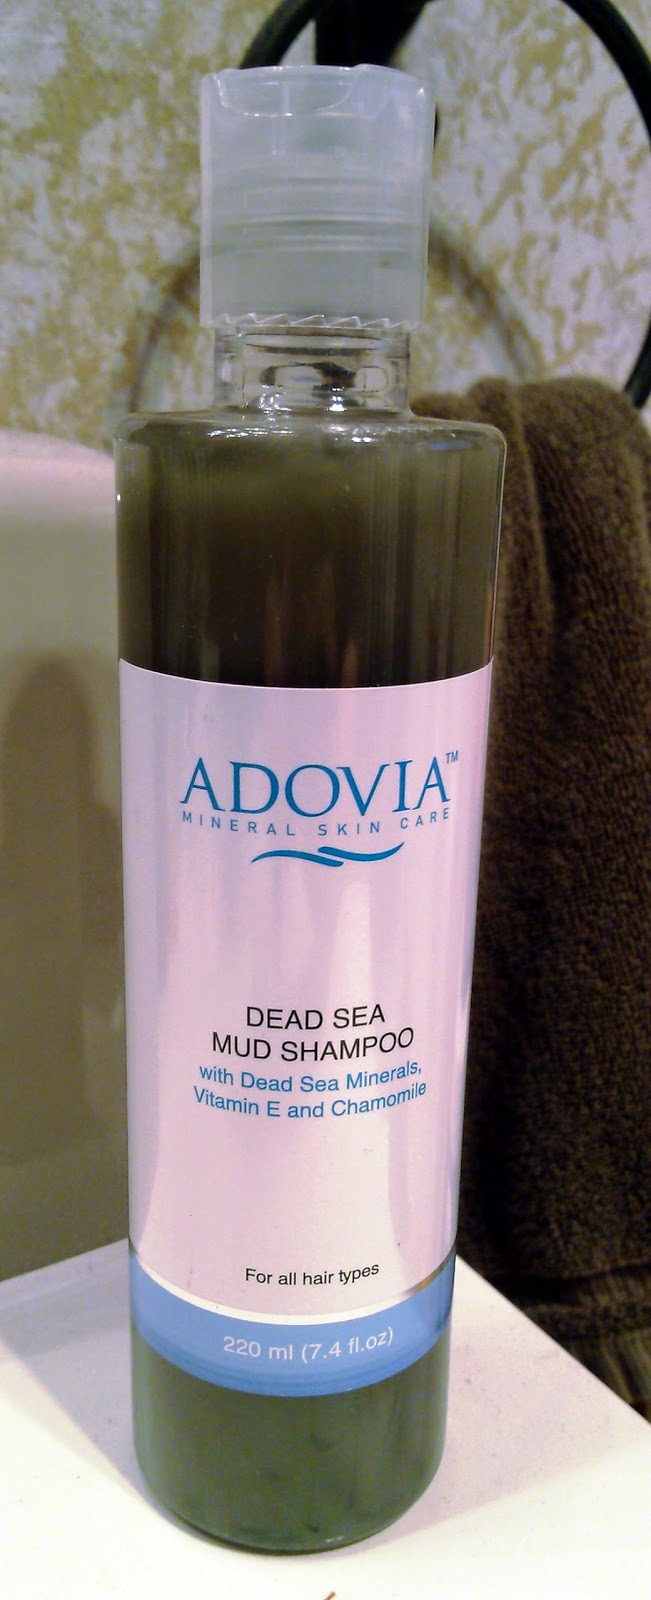 Adovia Dead Sea Mud Shampoo Review